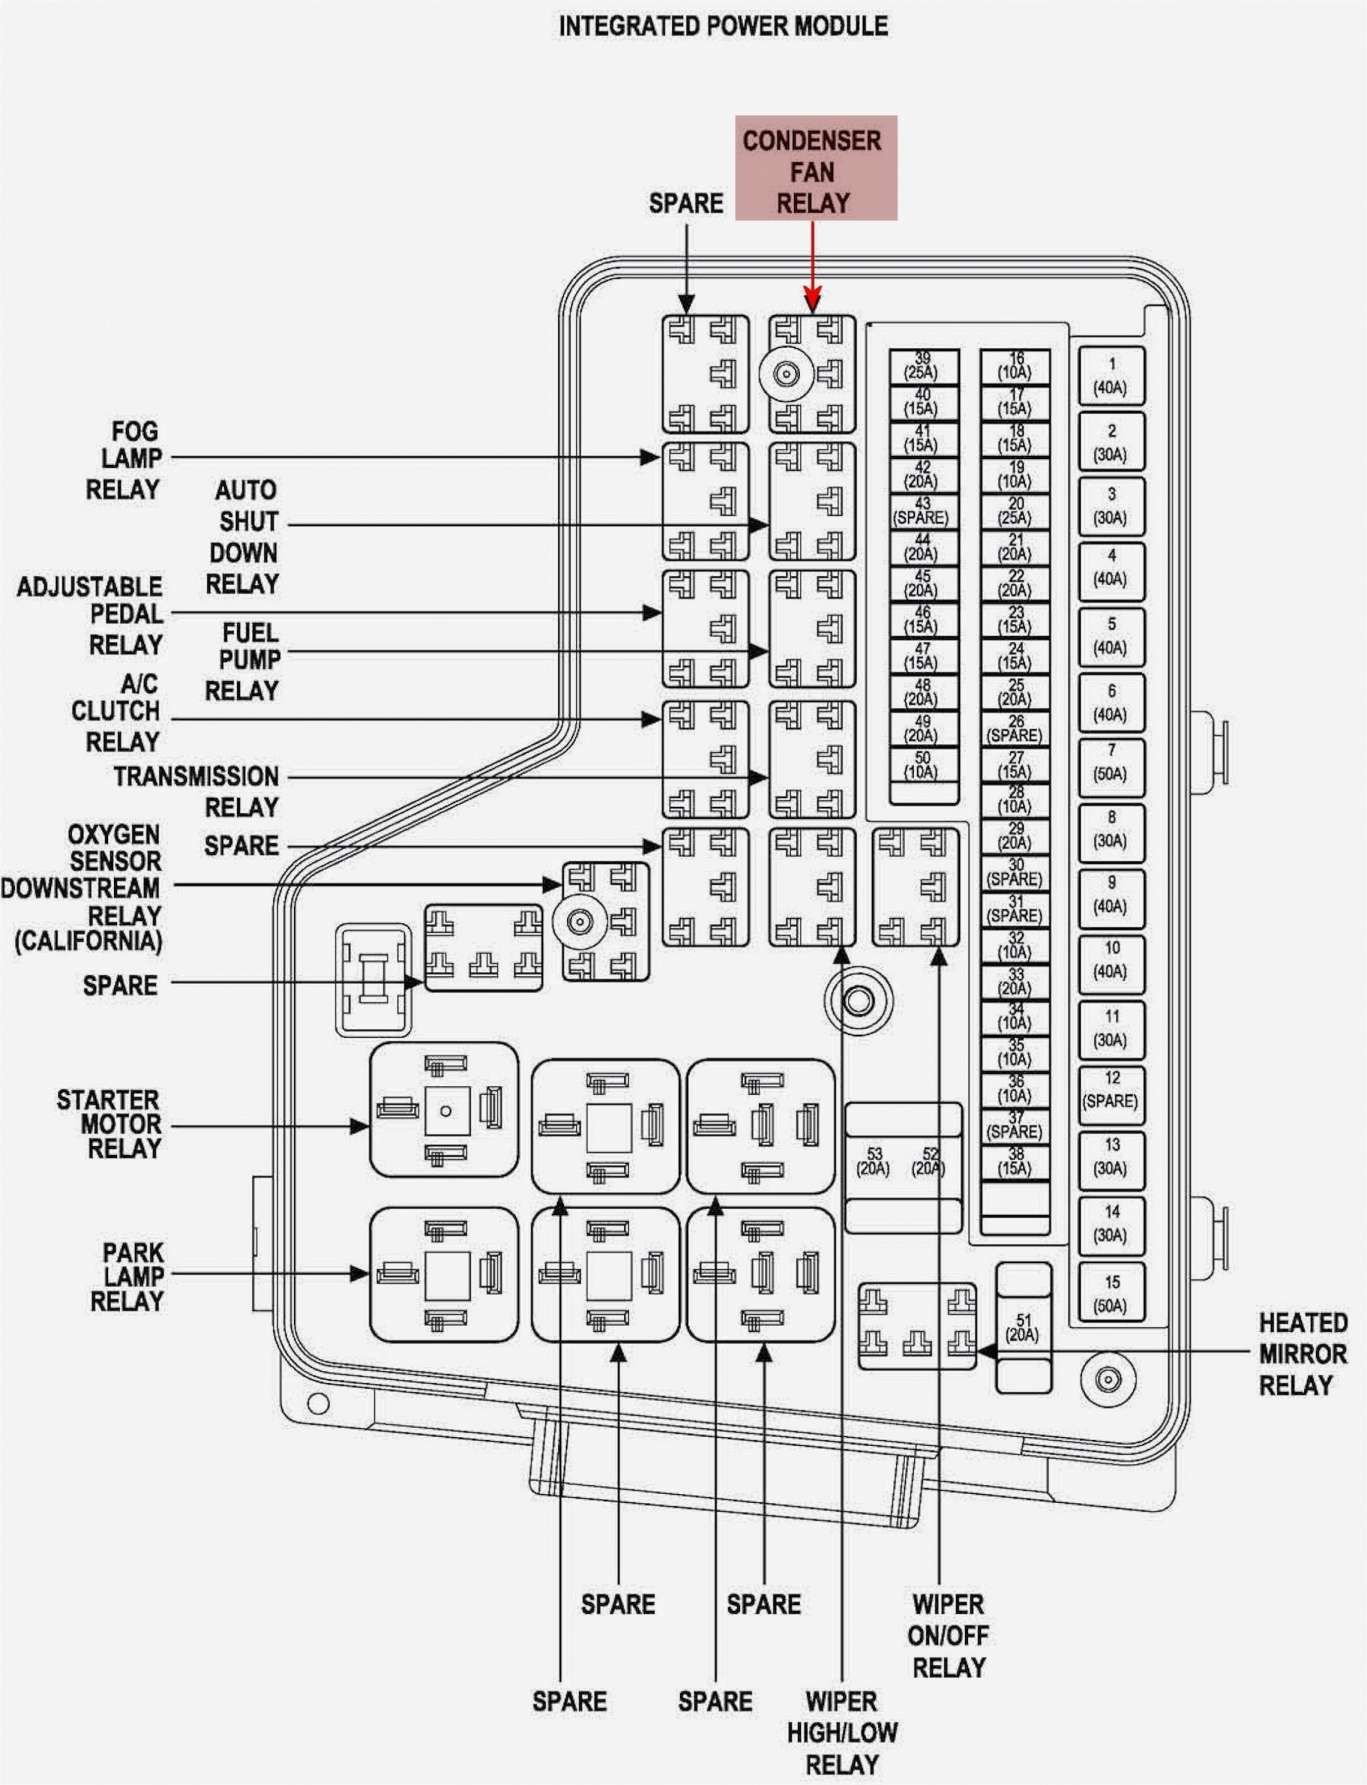 1996 ram 1500 wiring diagram 17 fuse box diagram 96 ram 1500 truck truck diagram in 2020 1996 dodge ram 1500 speaker wiring diagram 17 fuse box diagram 96 ram 1500 truck